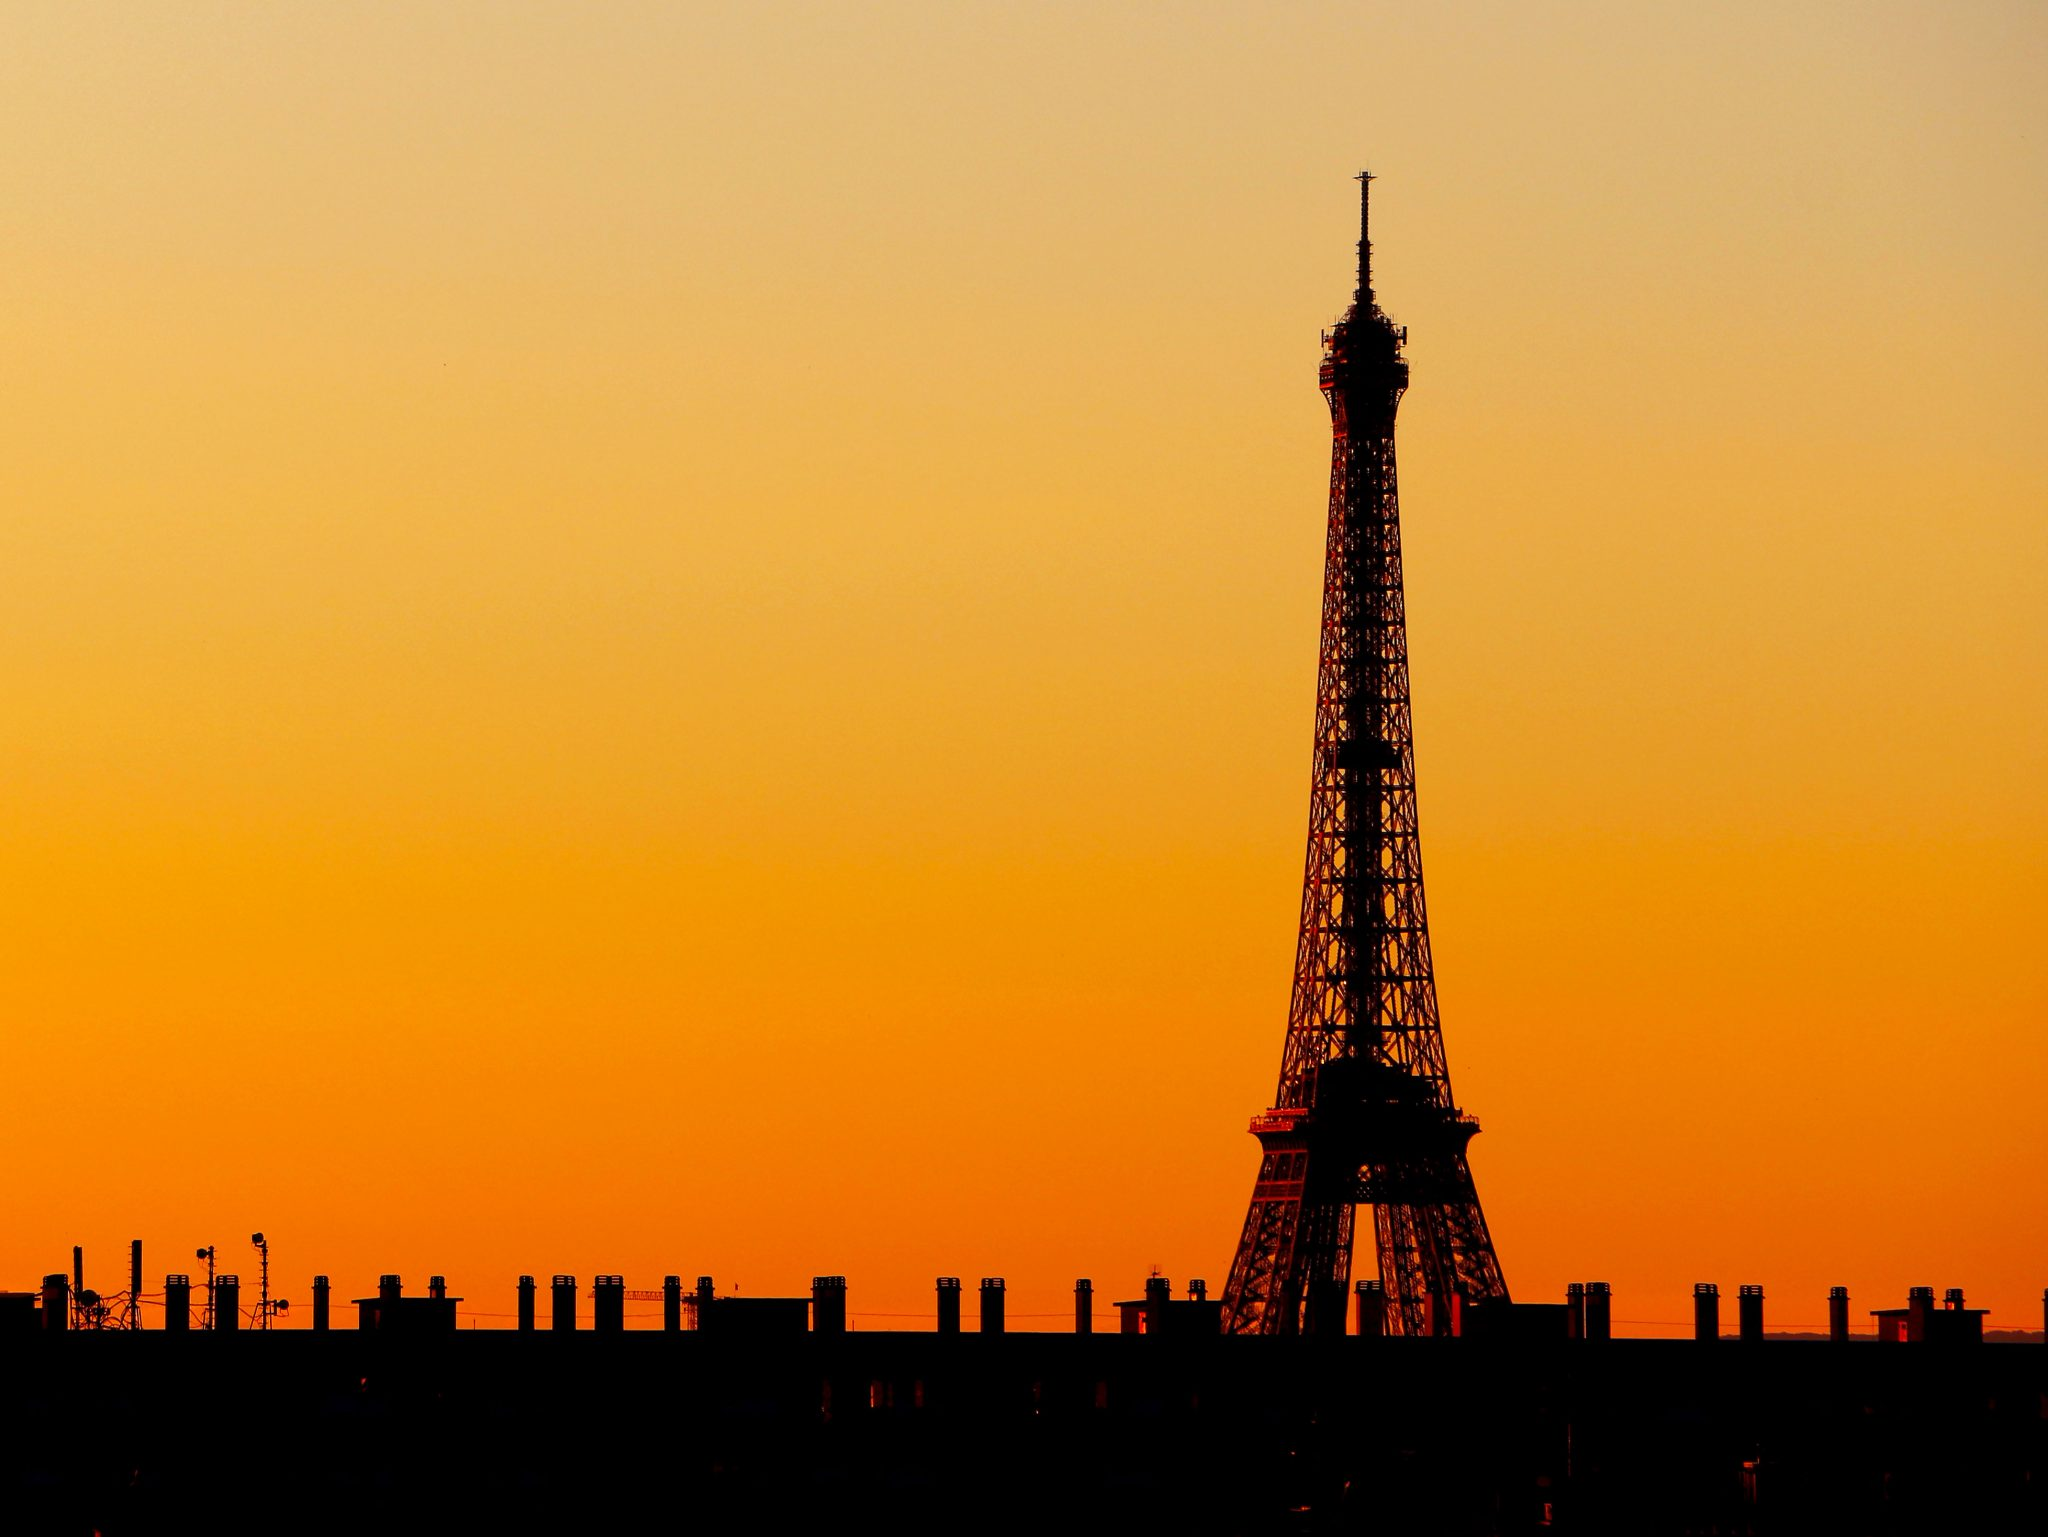 French Photographer Paris France Landscape Photography Orange Sunset at Eiffel Tower